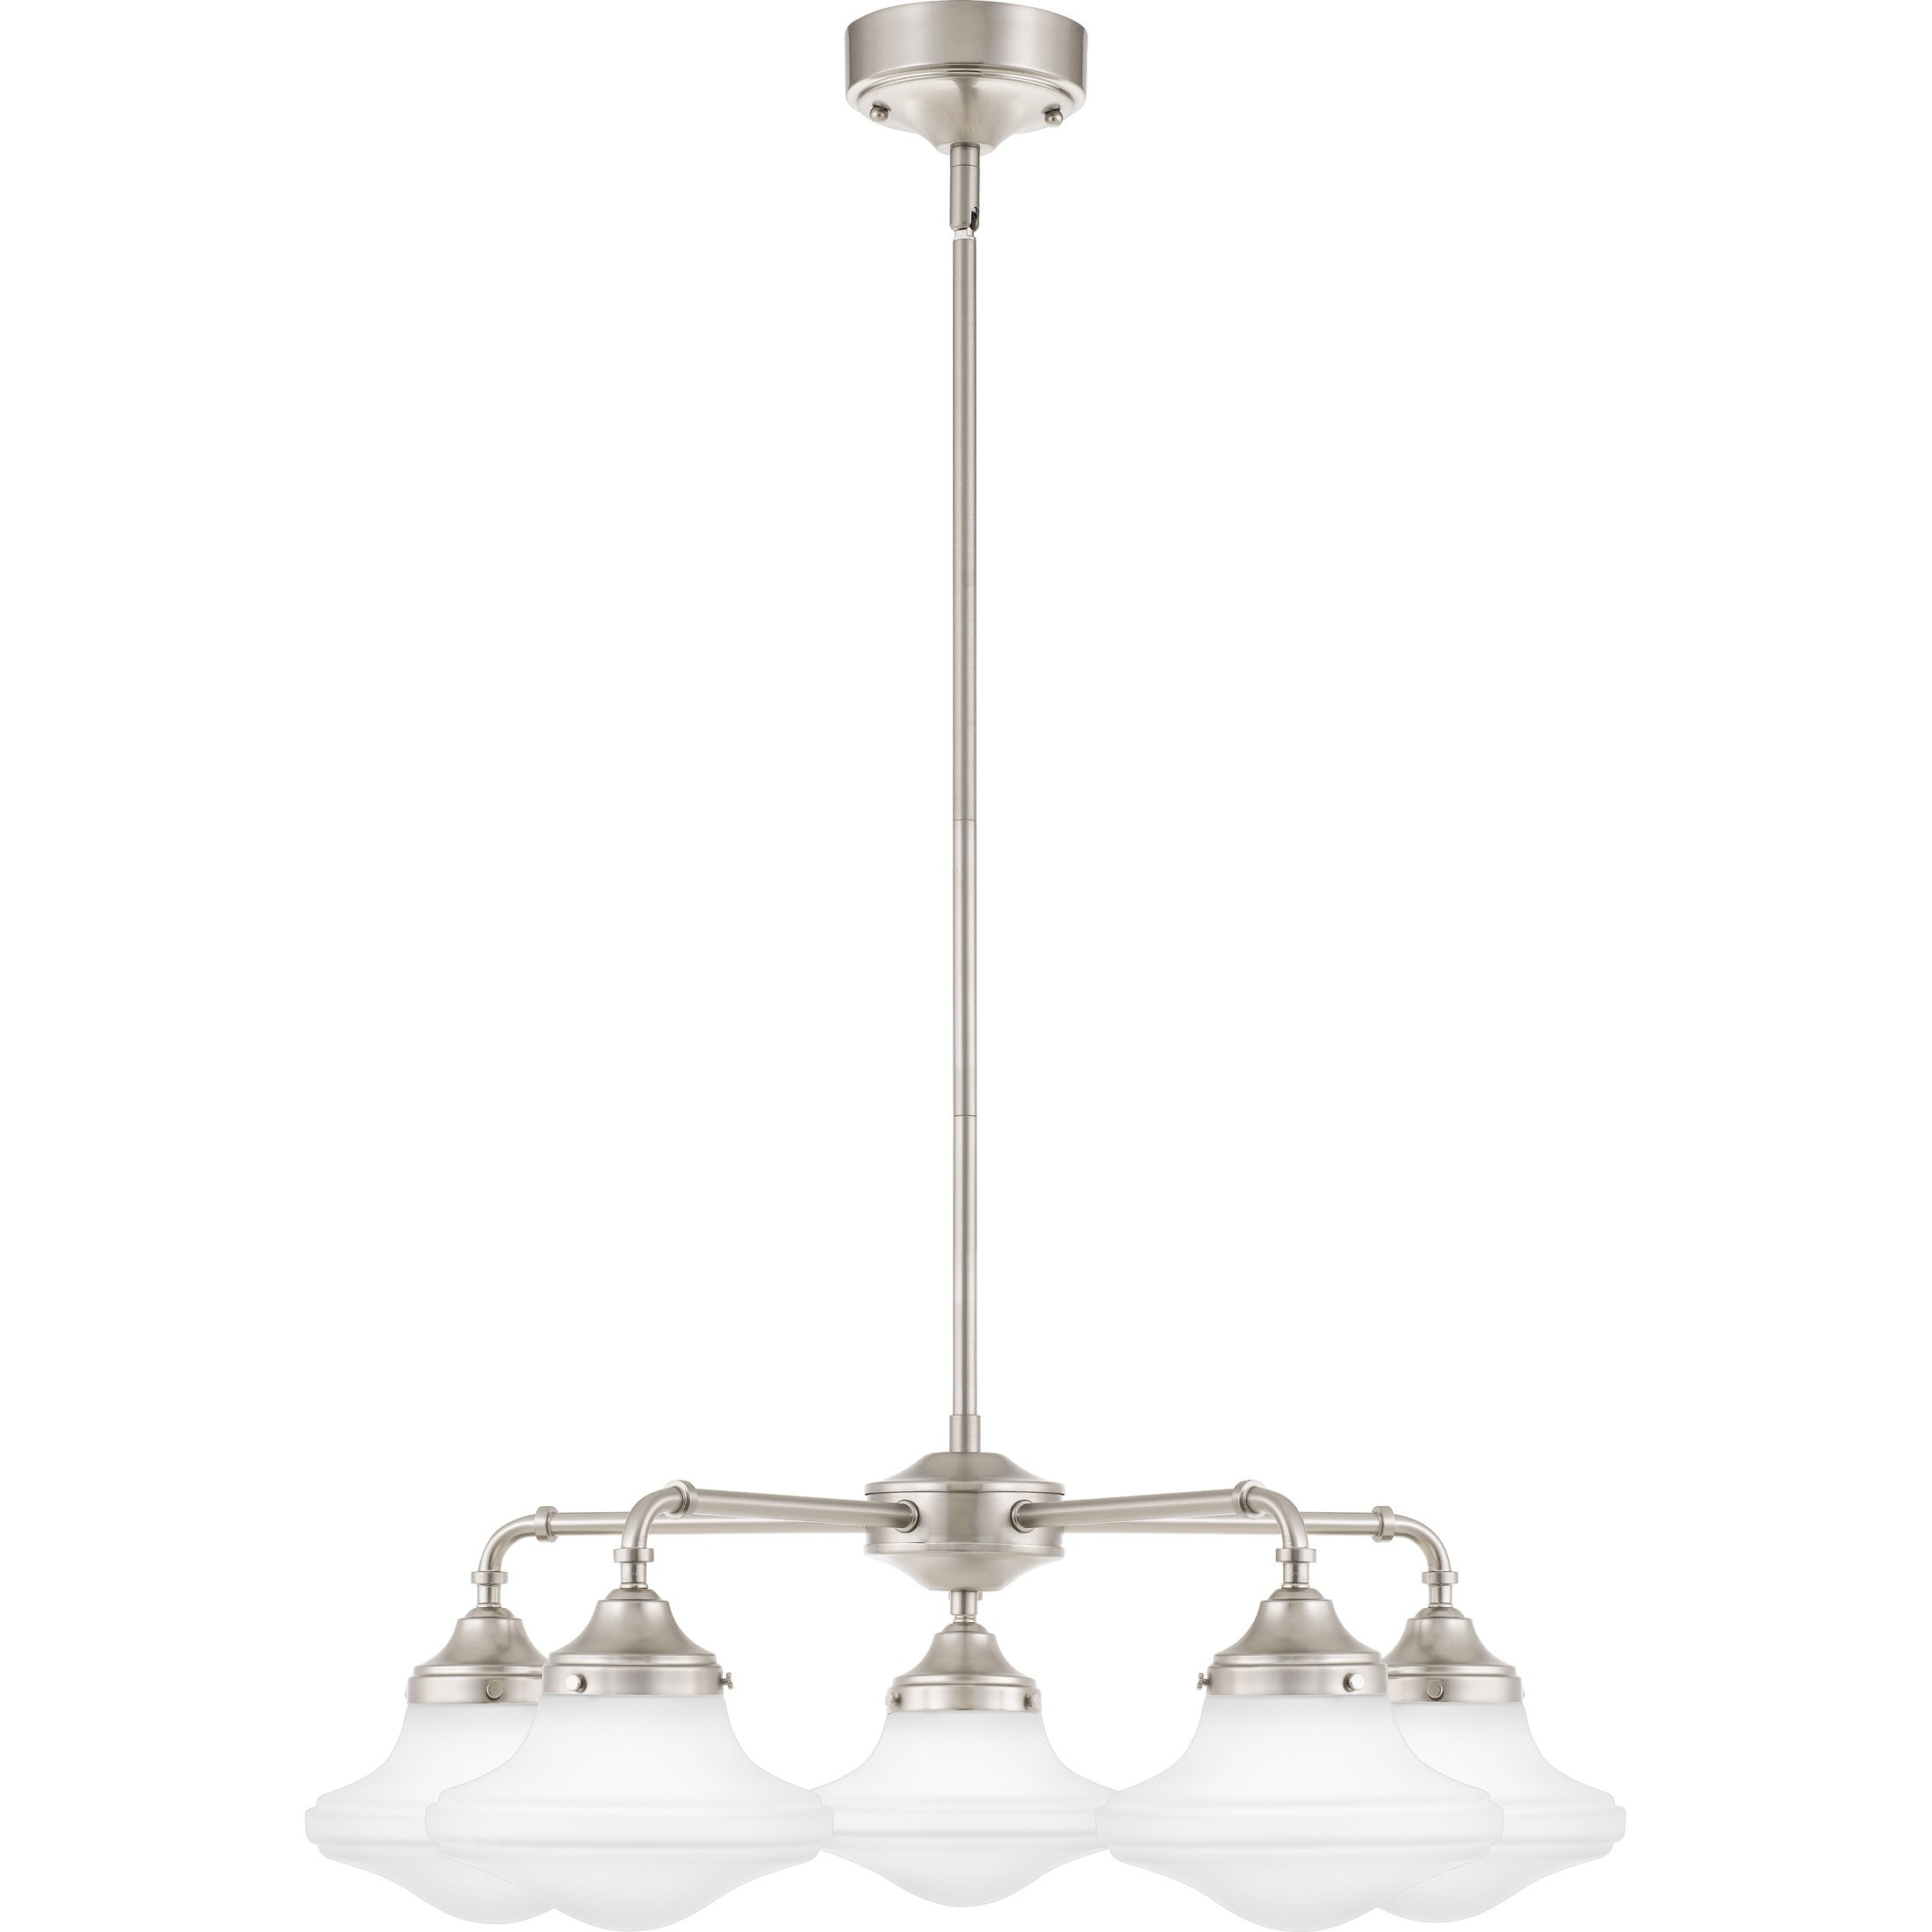 Quoizel Academy Opal Etched Glass 5-light 28-inch Wide Chandelier